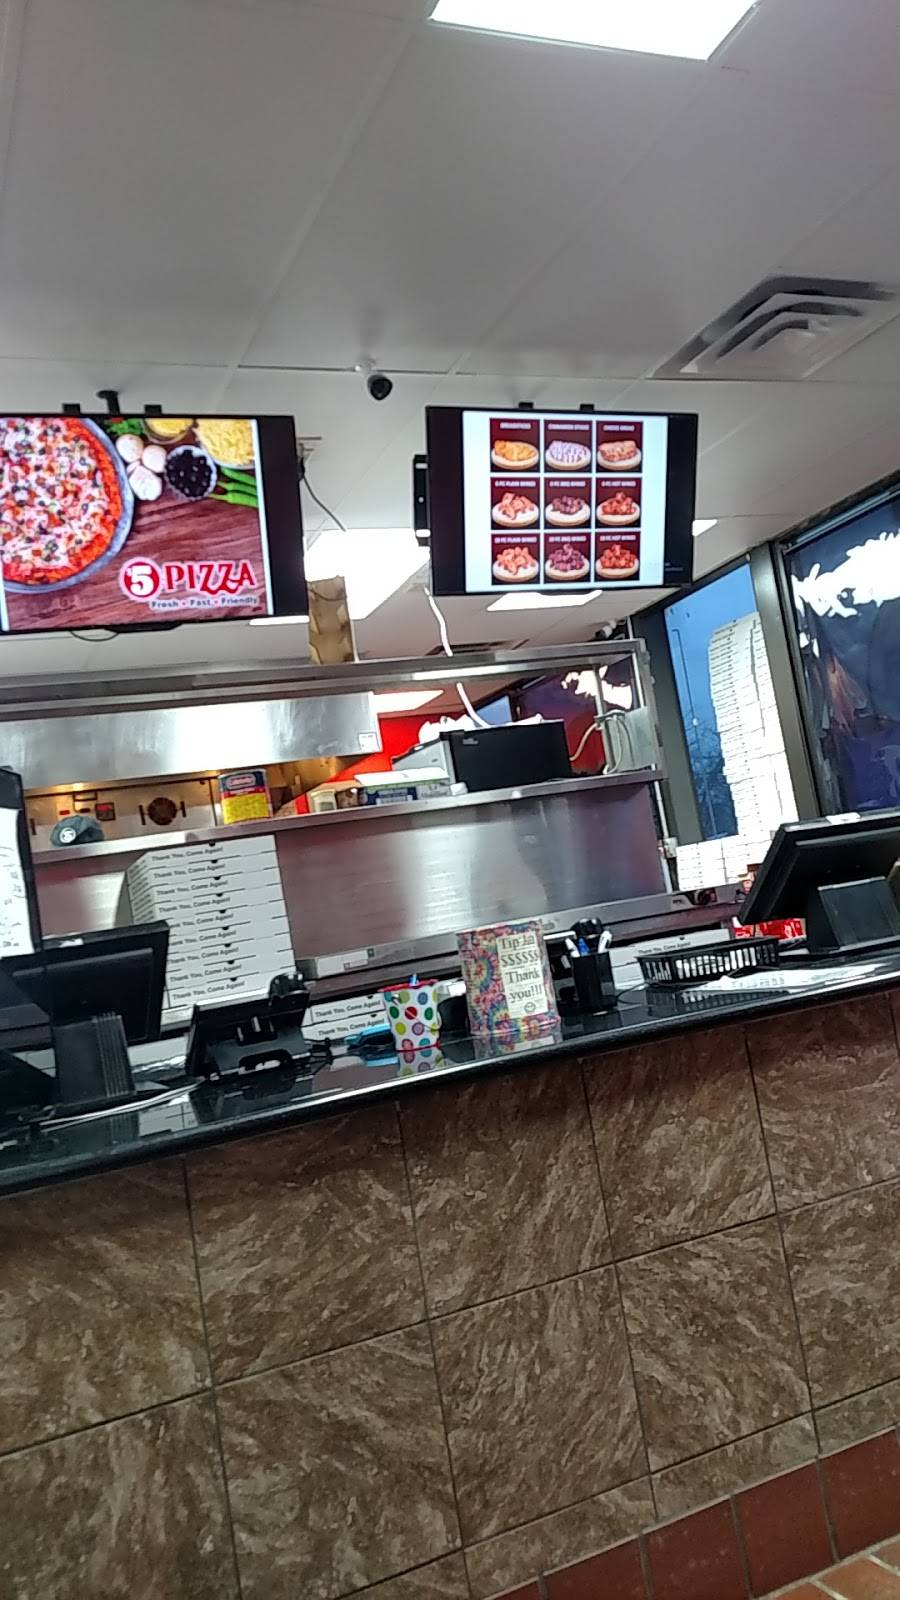 $5 Pizza - meal takeaway  | Photo 1 of 10 | Address: 1158 Southview Blvd, South St Paul, MN 55075, USA | Phone: (651) 493-4136